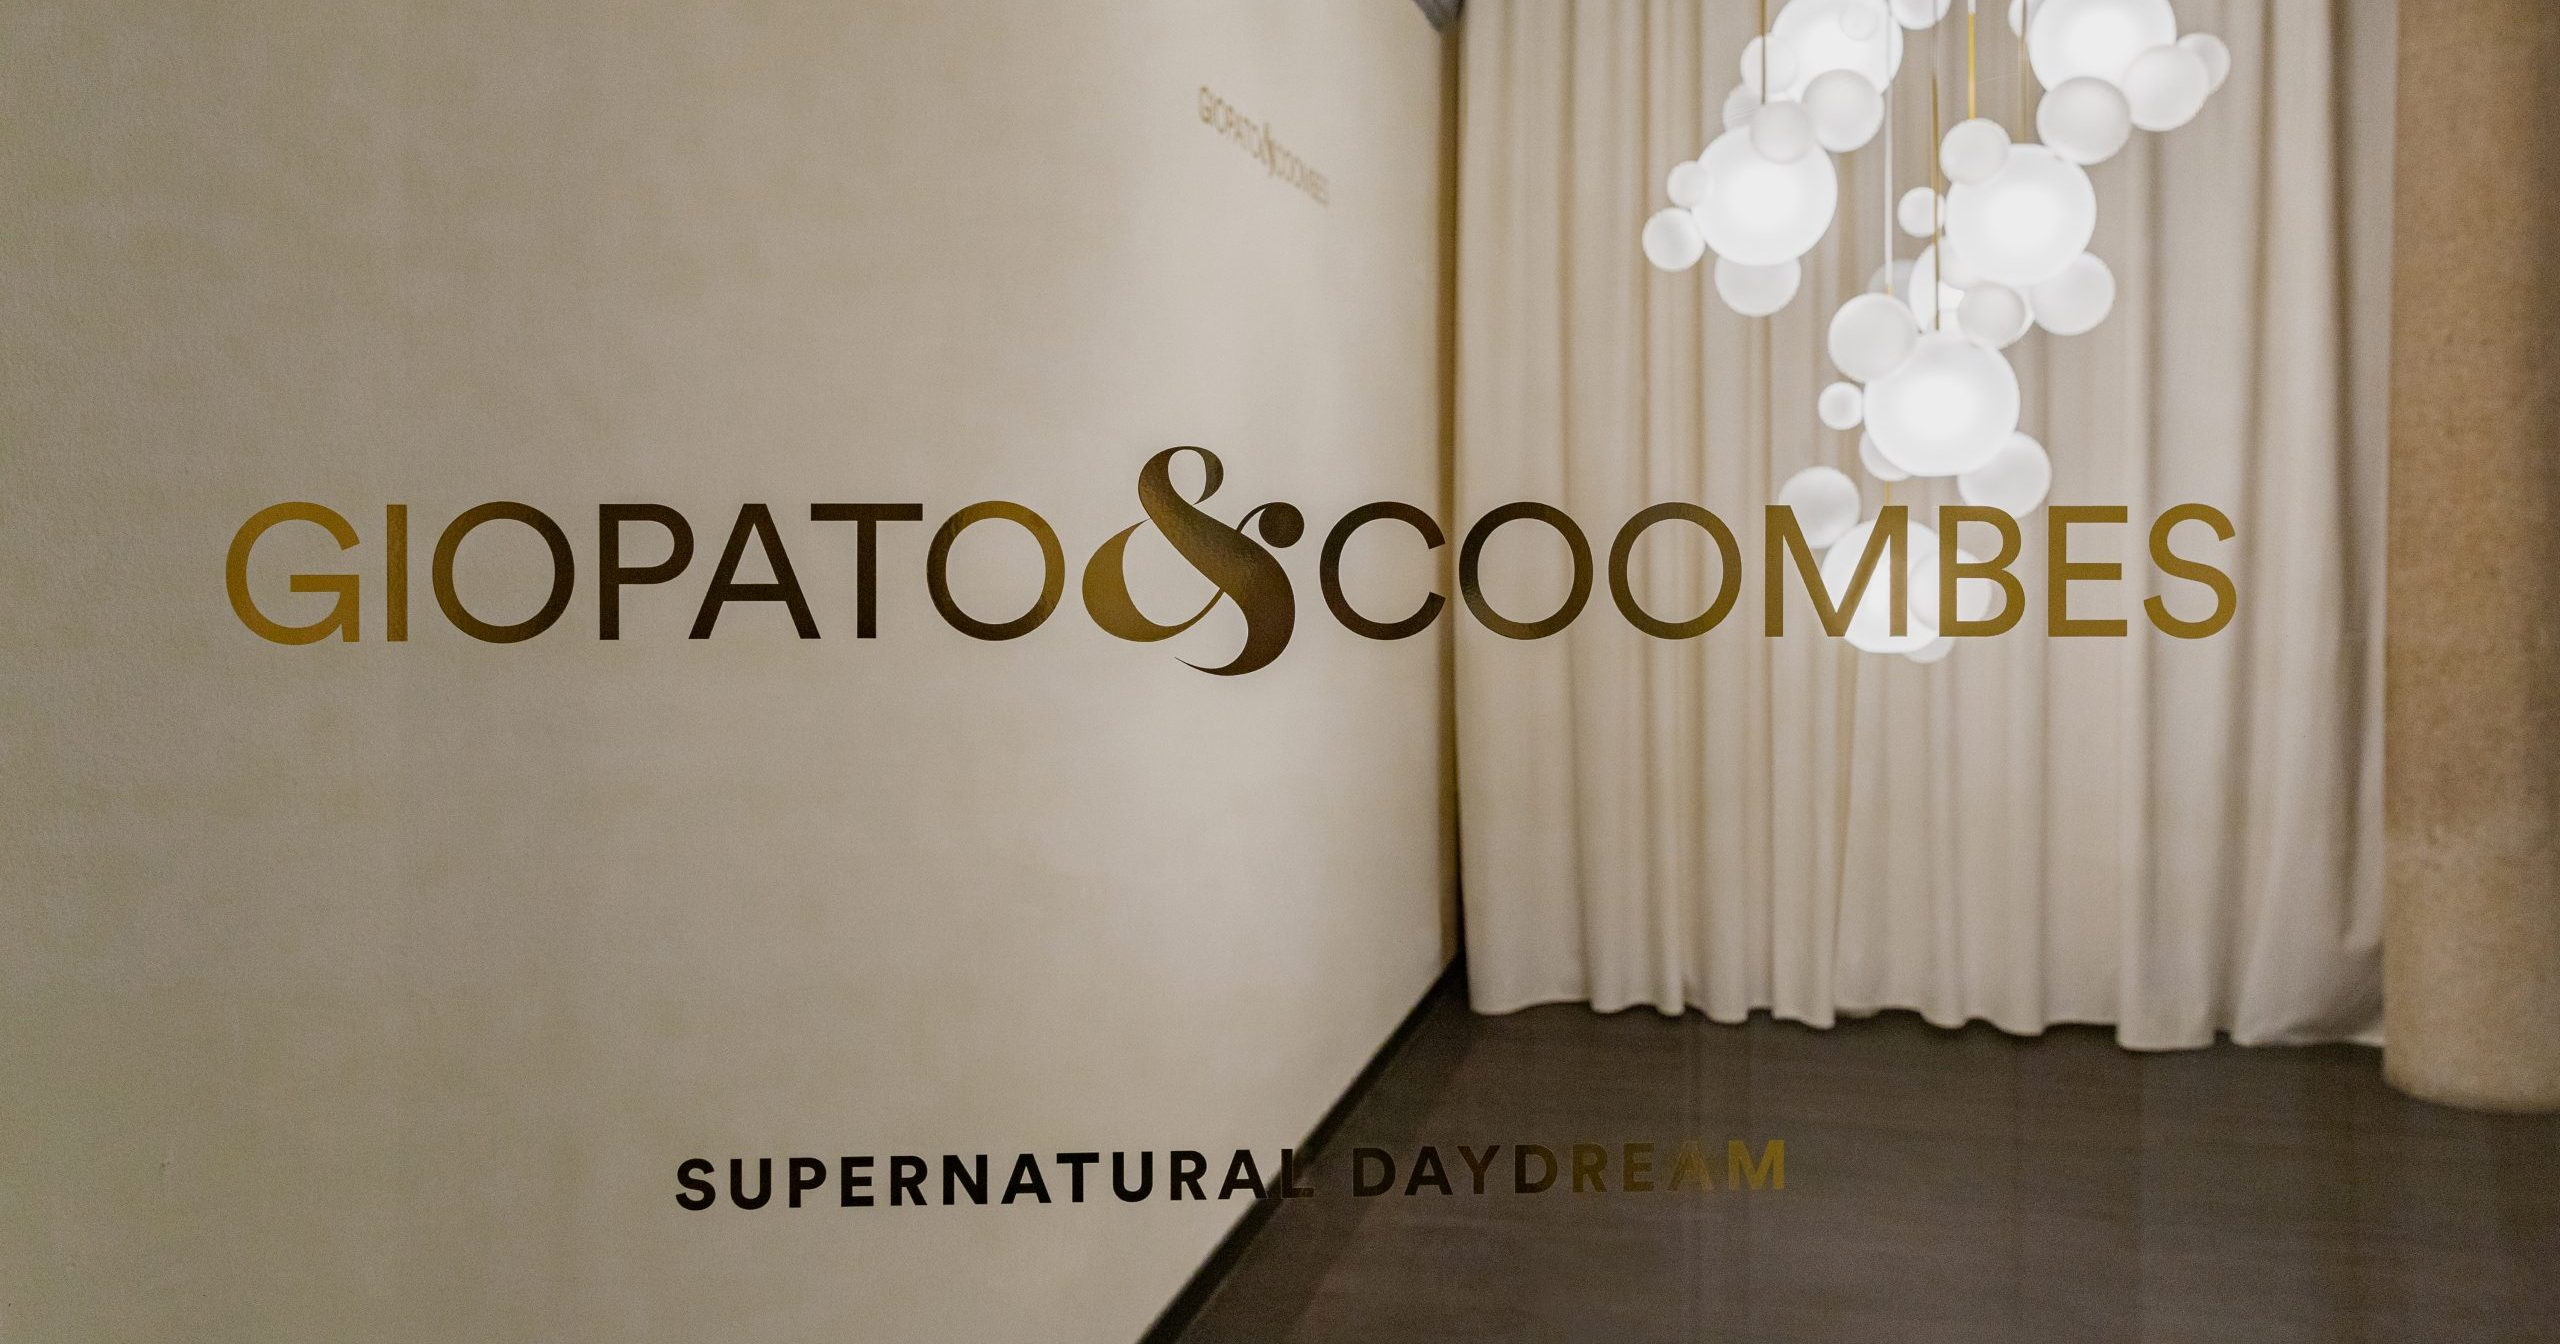 Giopato & Coombes Gallery 3